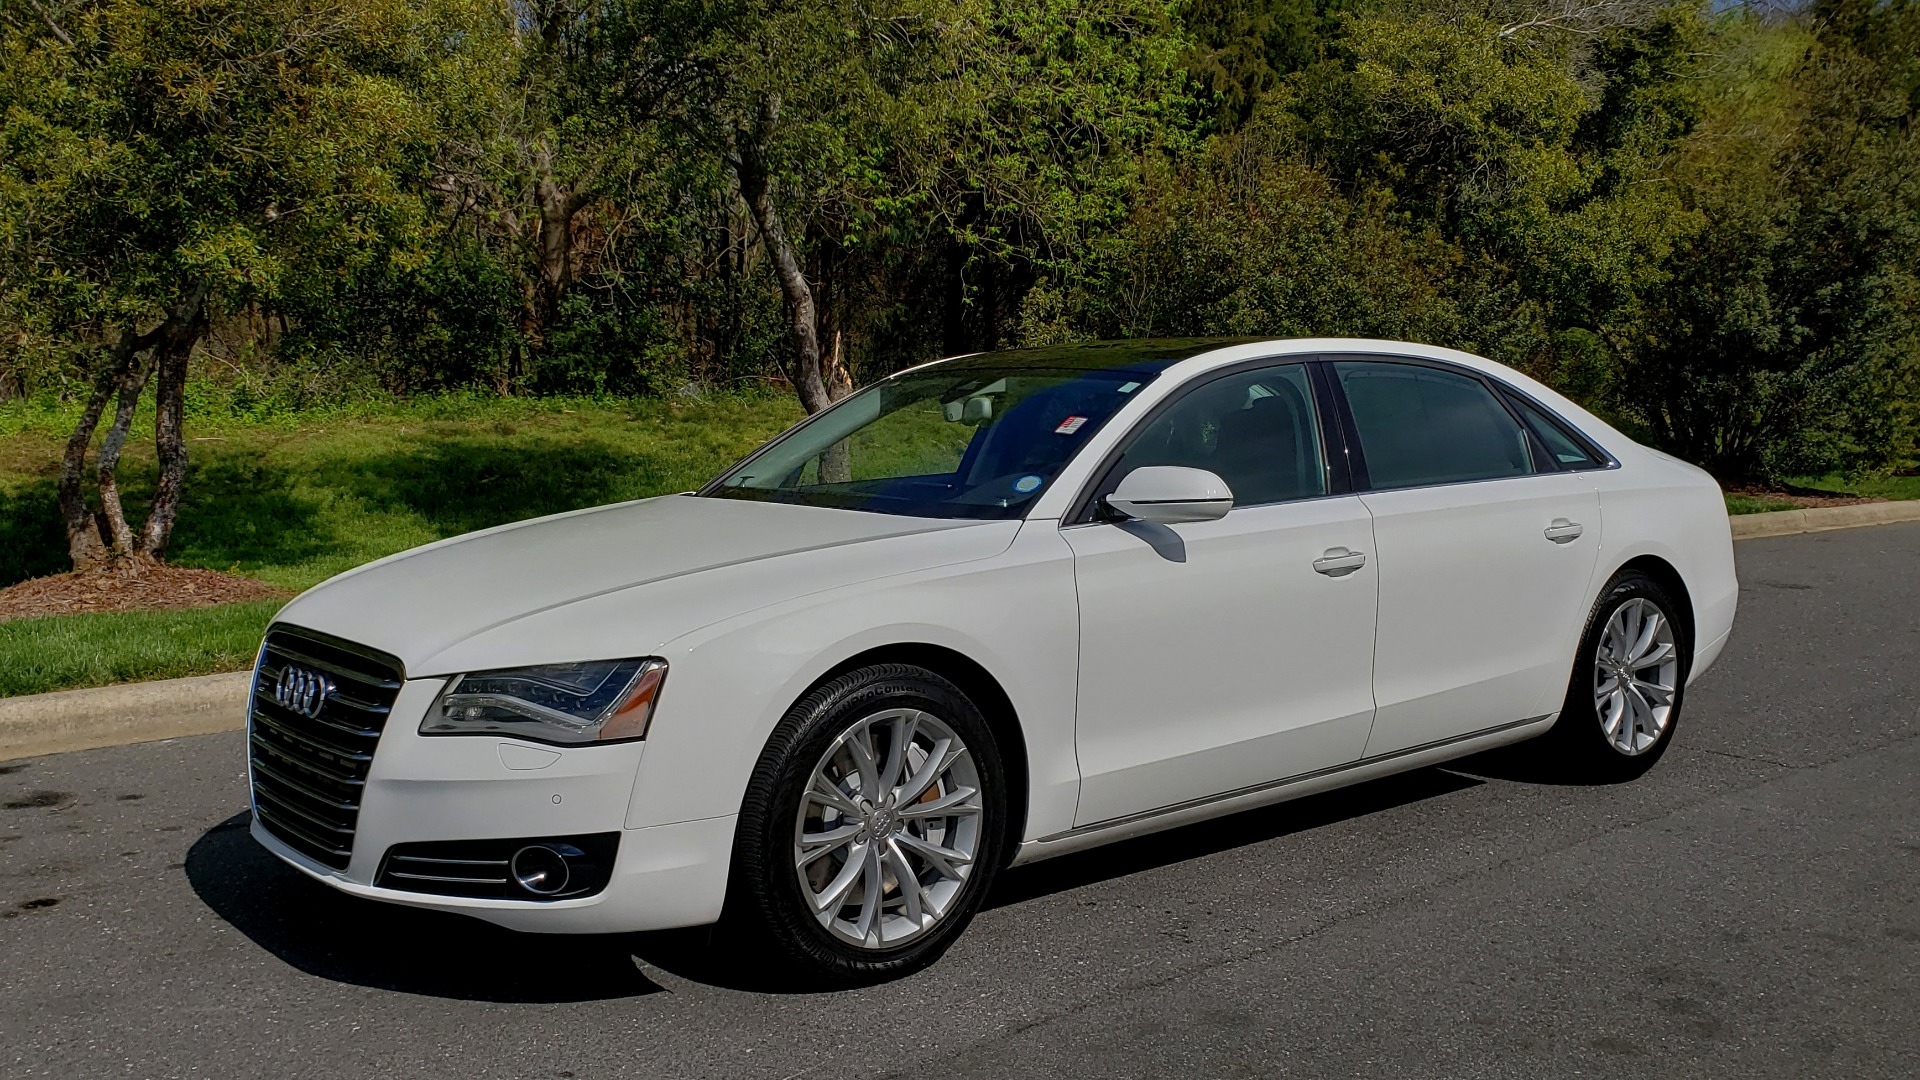 Used 2011 Audi A8 L QUATTRO / NAV / PANO-ROOF / REARVIEW / BSM / B&O SND for sale Sold at Formula Imports in Charlotte NC 28227 1